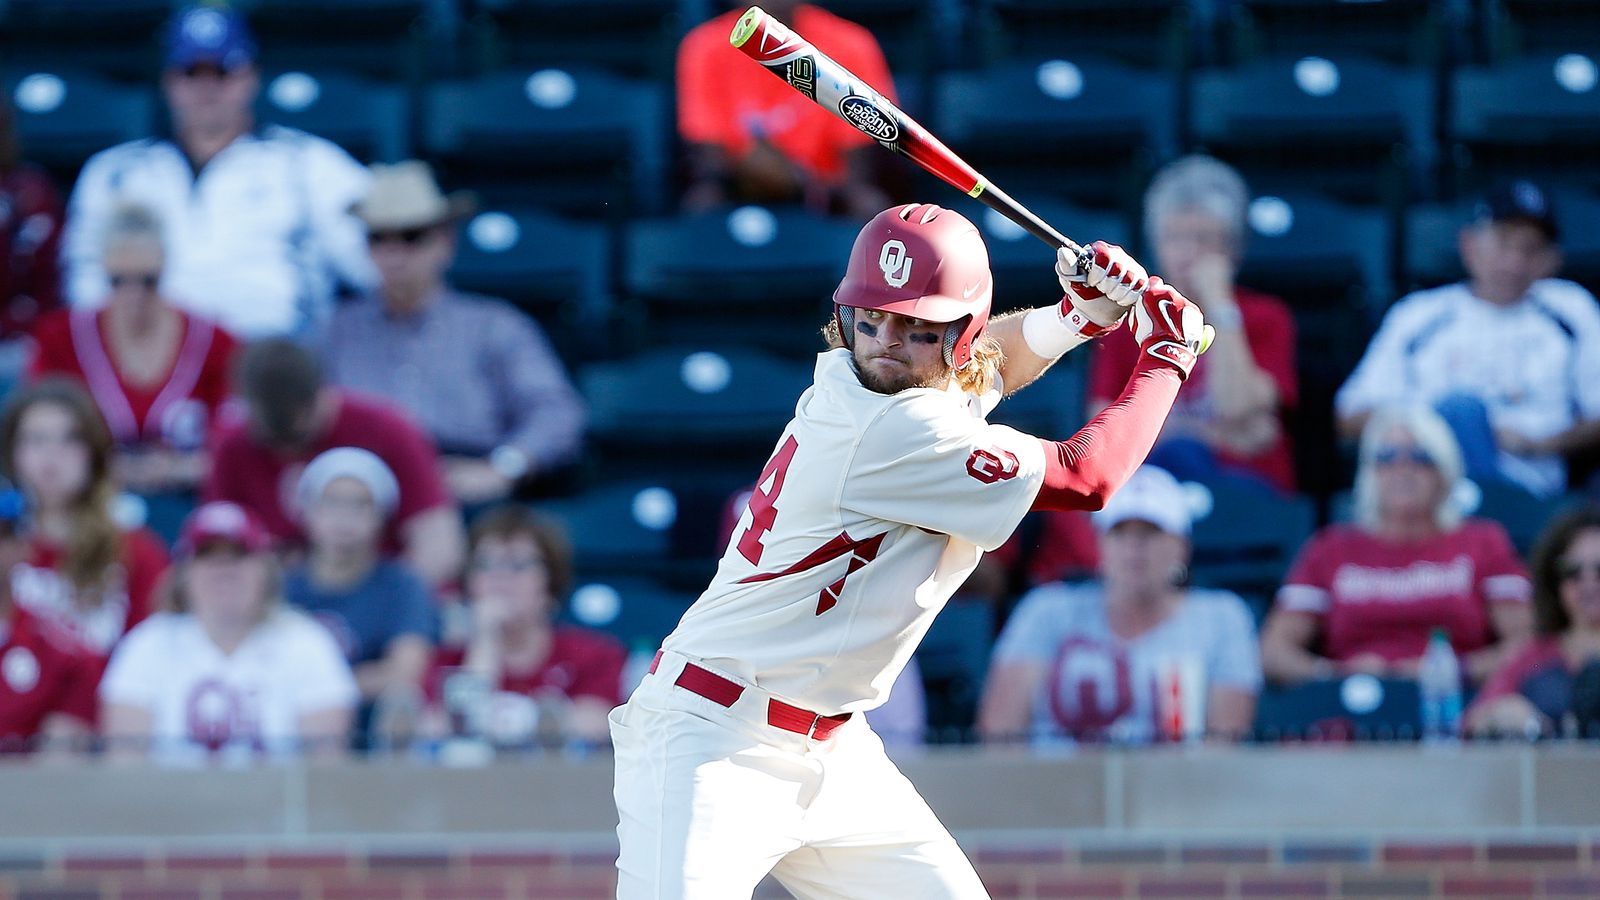 Cody-thomas-batting-2016-draft-ou-athletics.0.0